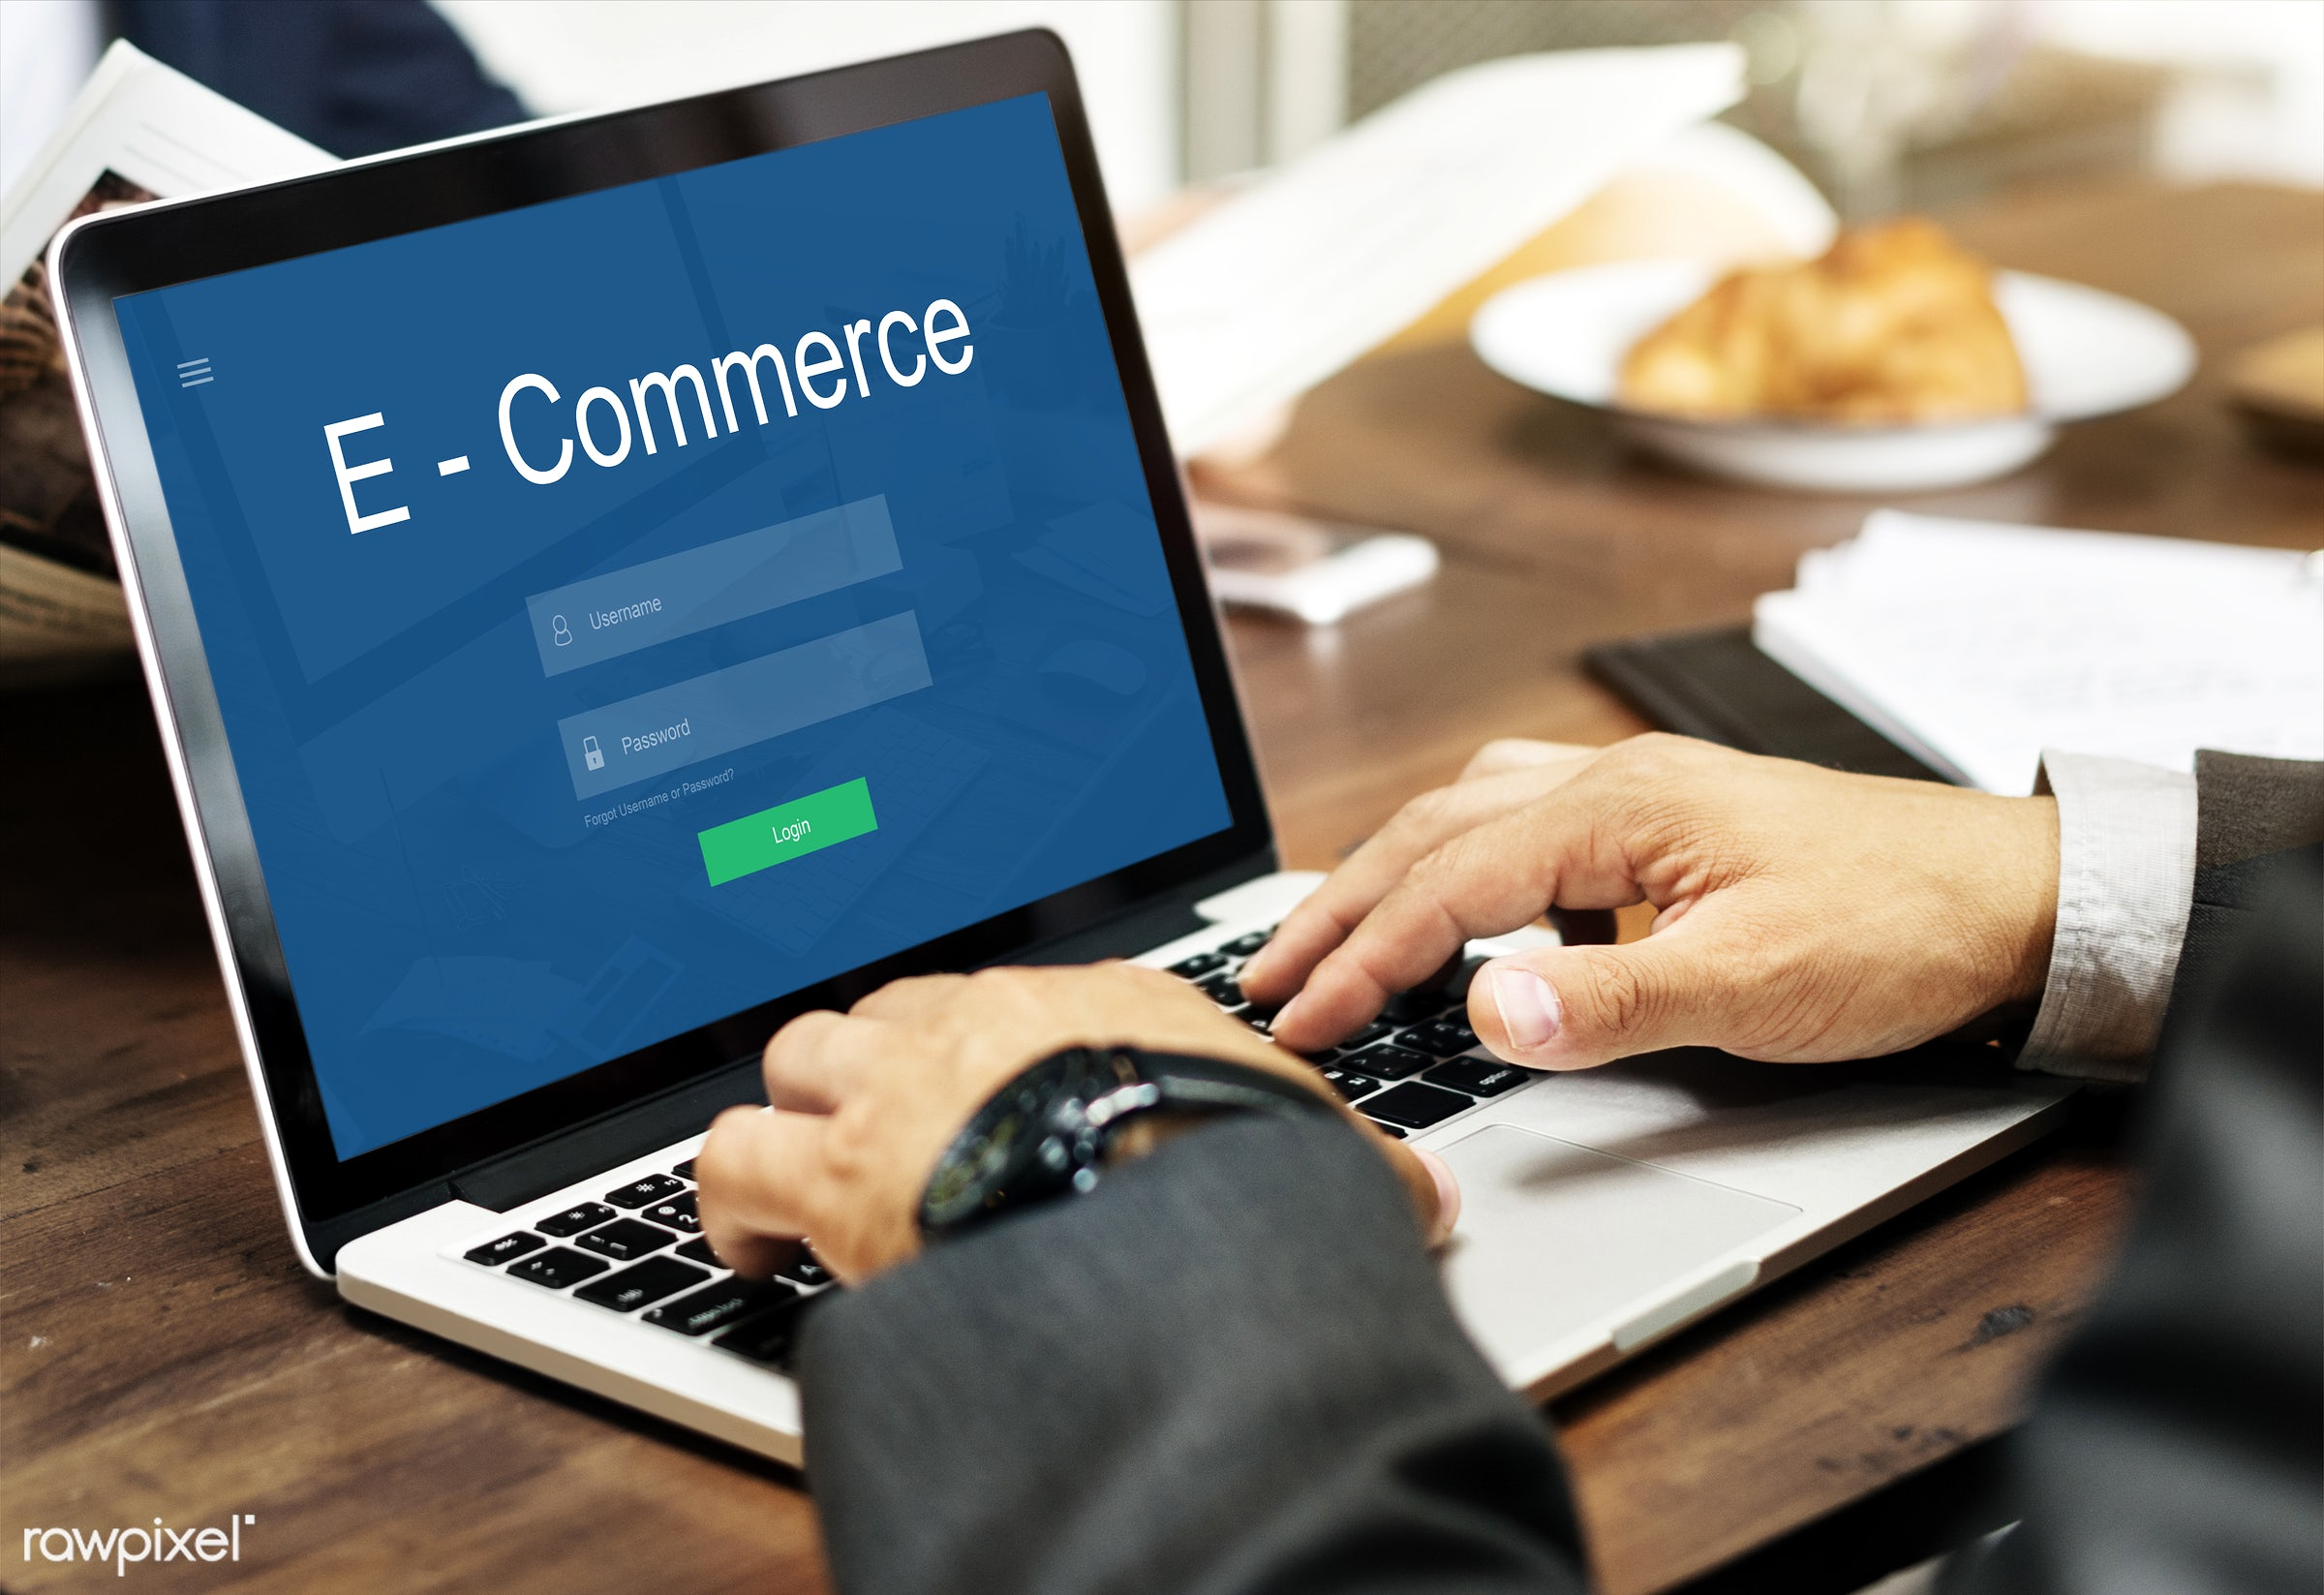 E-commerce - banking, browse, business, businessman, cafe, commercial, computer, computing, corporate, device, digital...